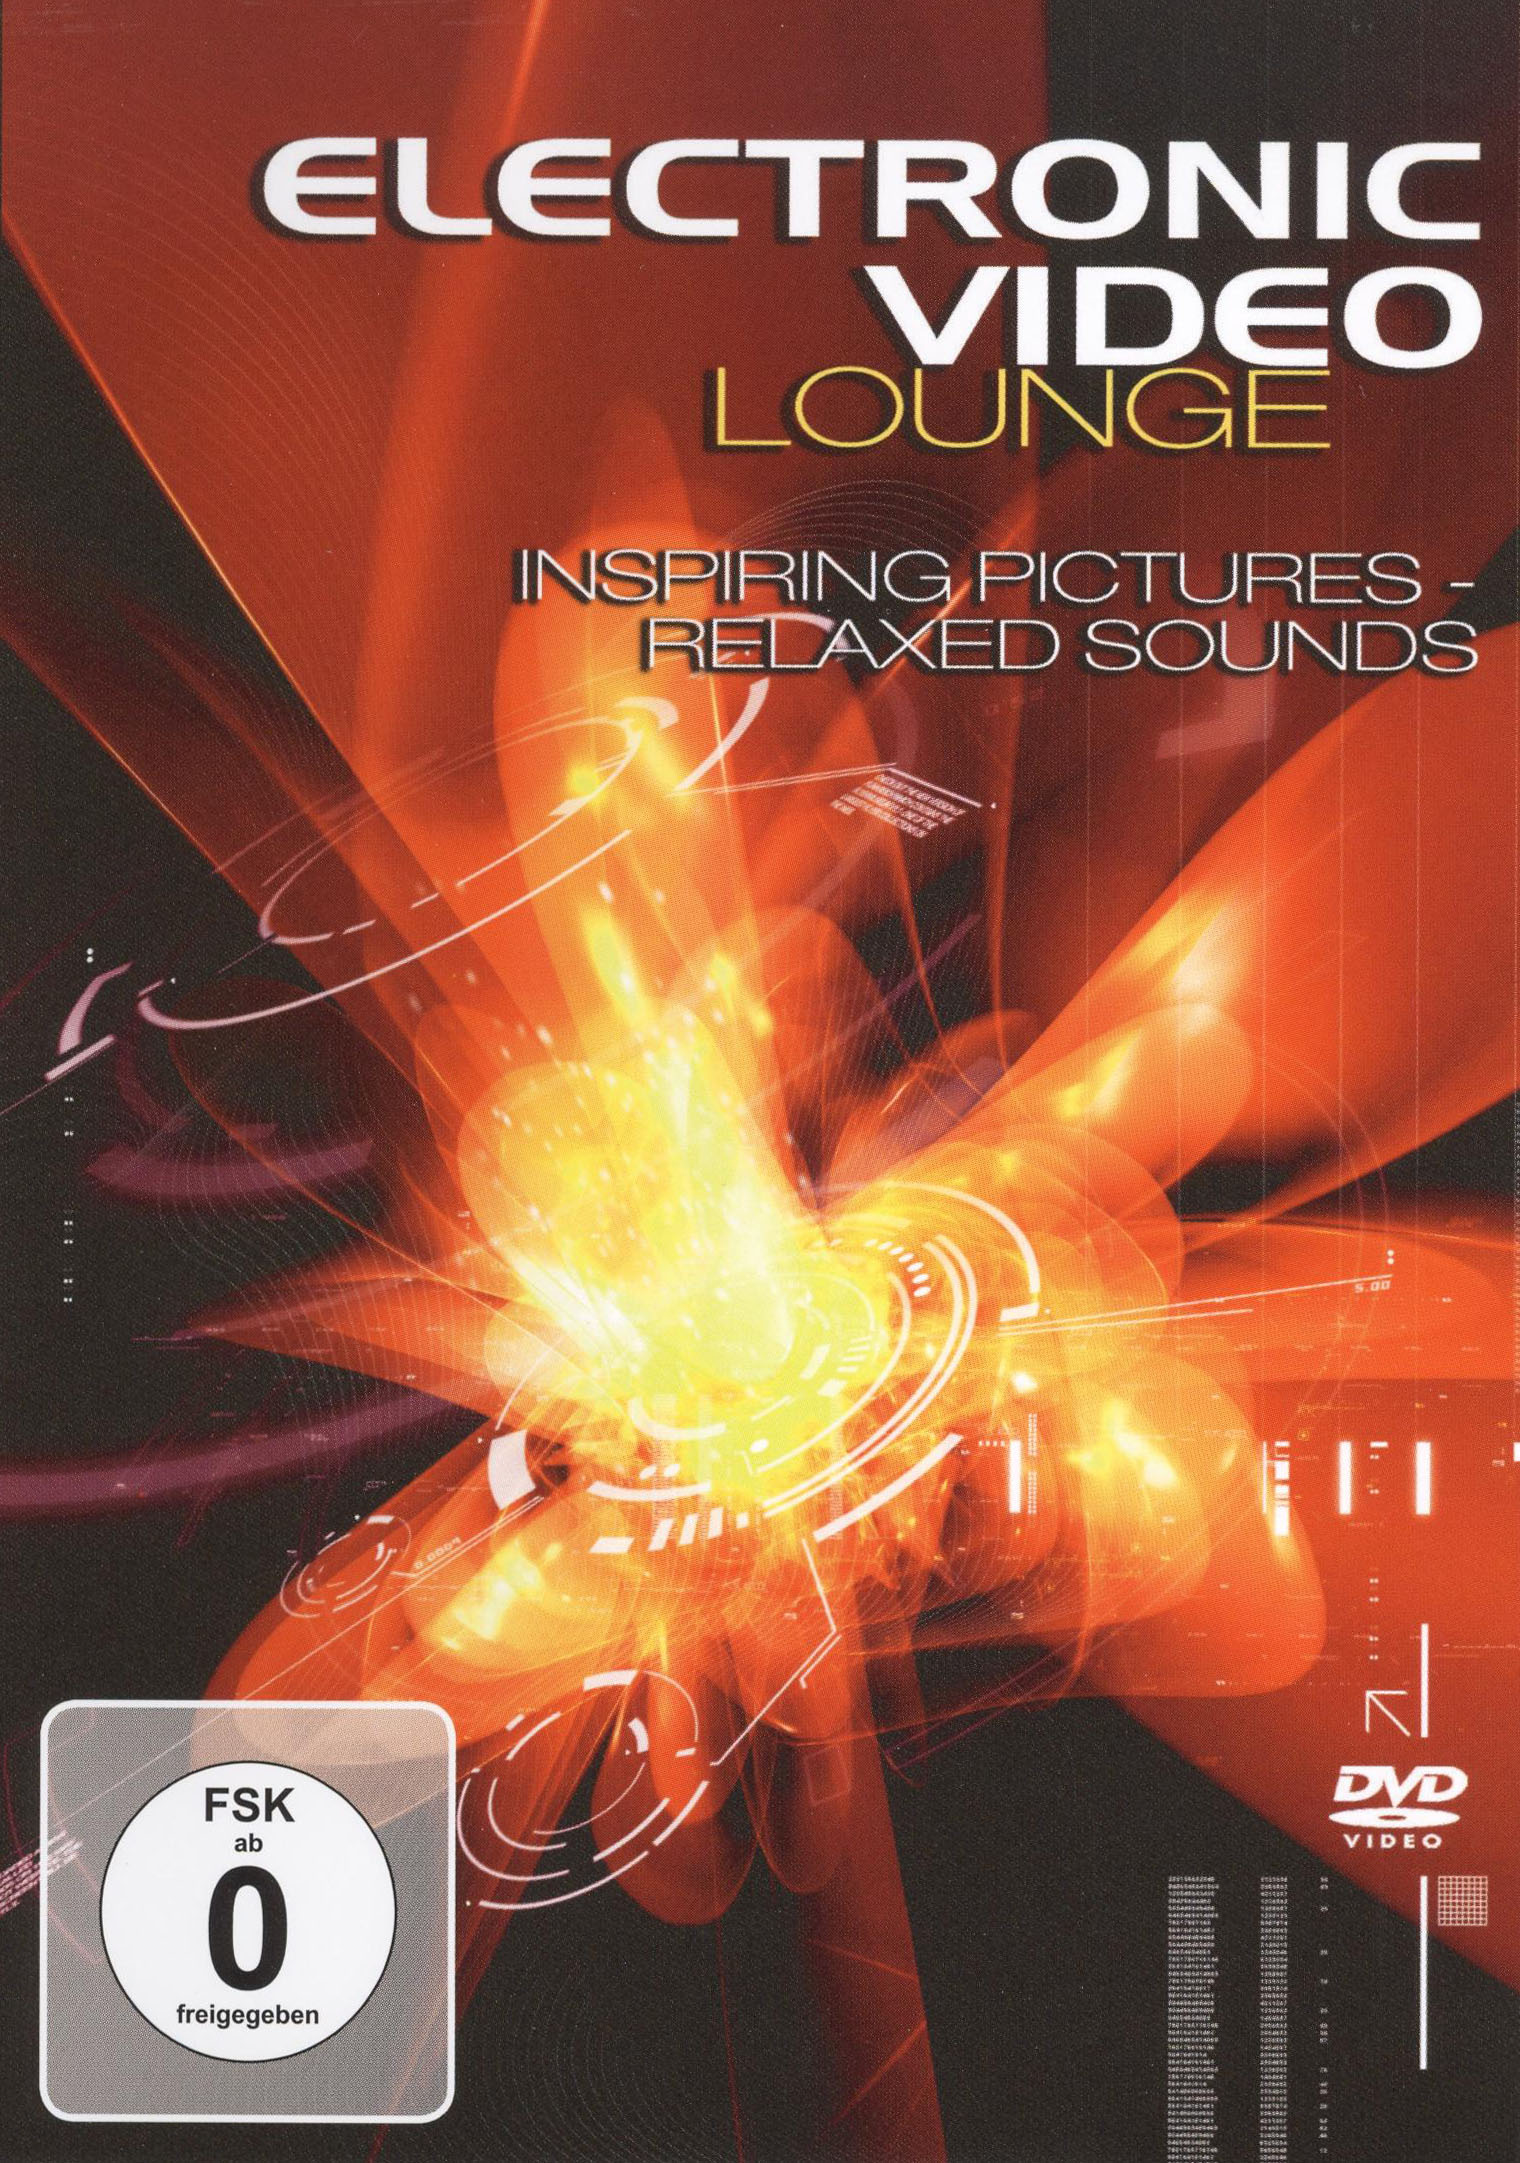 Electronic Video Lounge: Inspiring Pictures - Relaxed Sounds